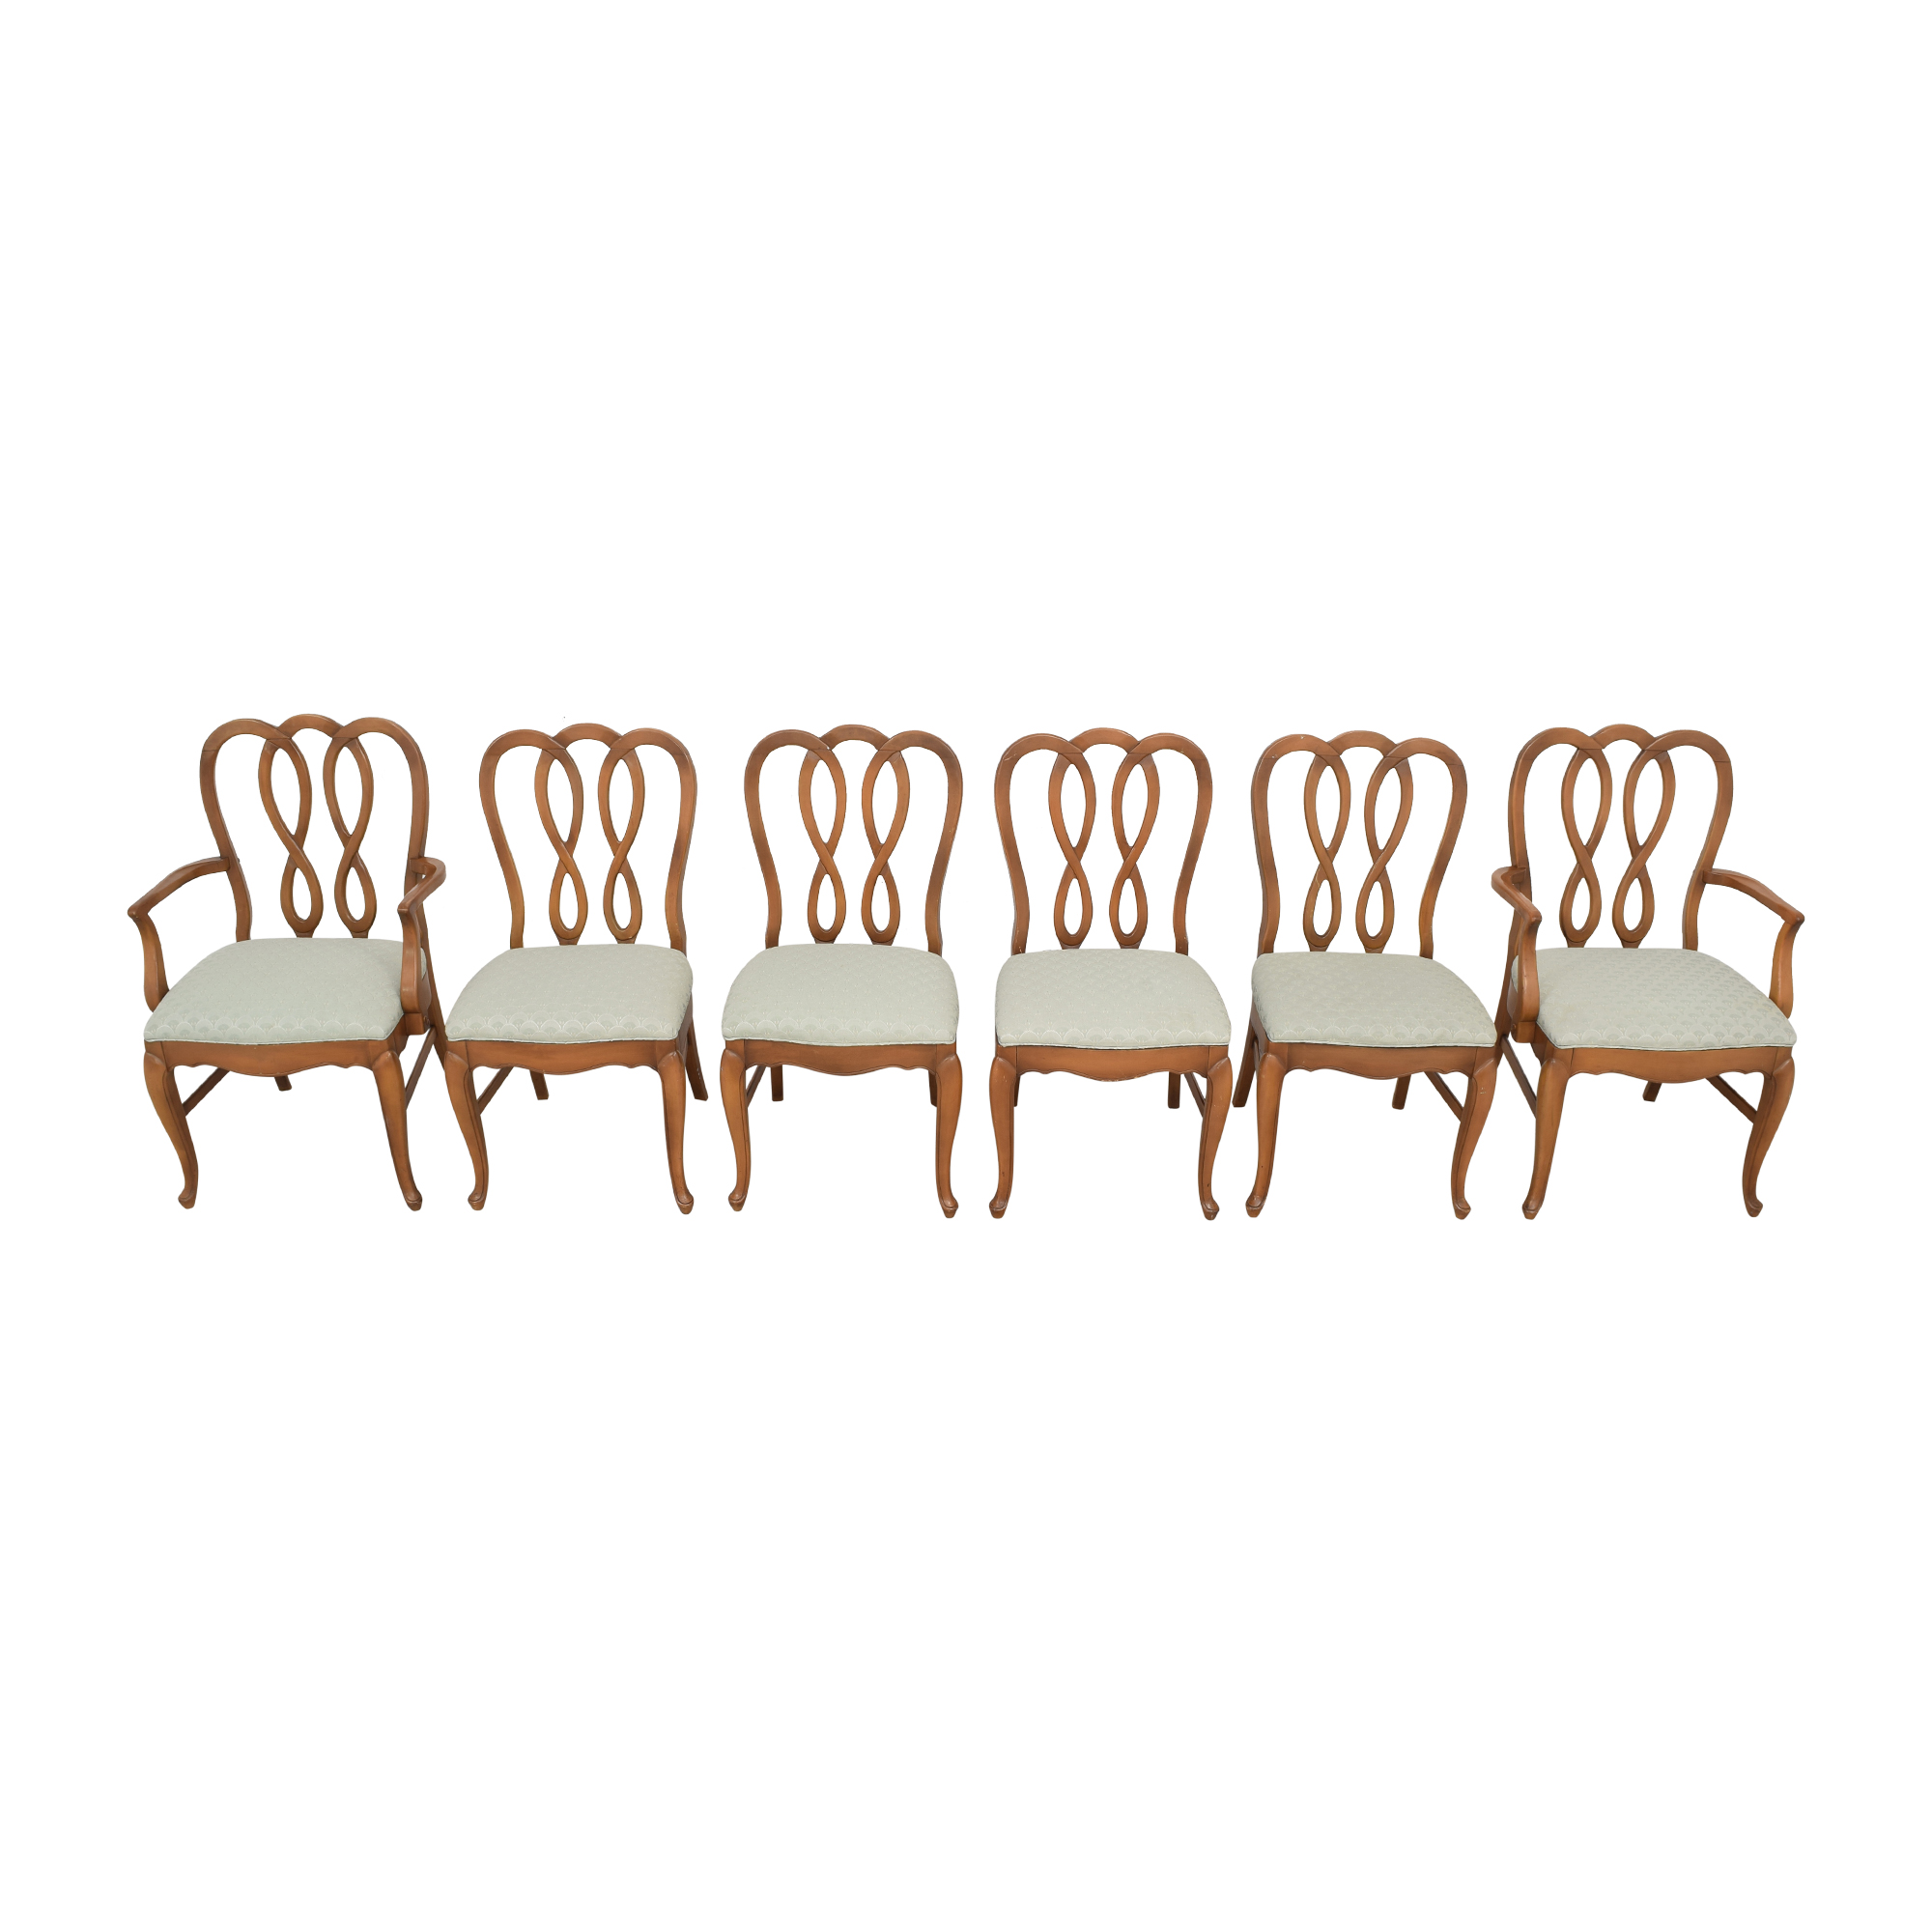 Williams Furniture Williams Furniture Bentwood Style Dining Chairs discount